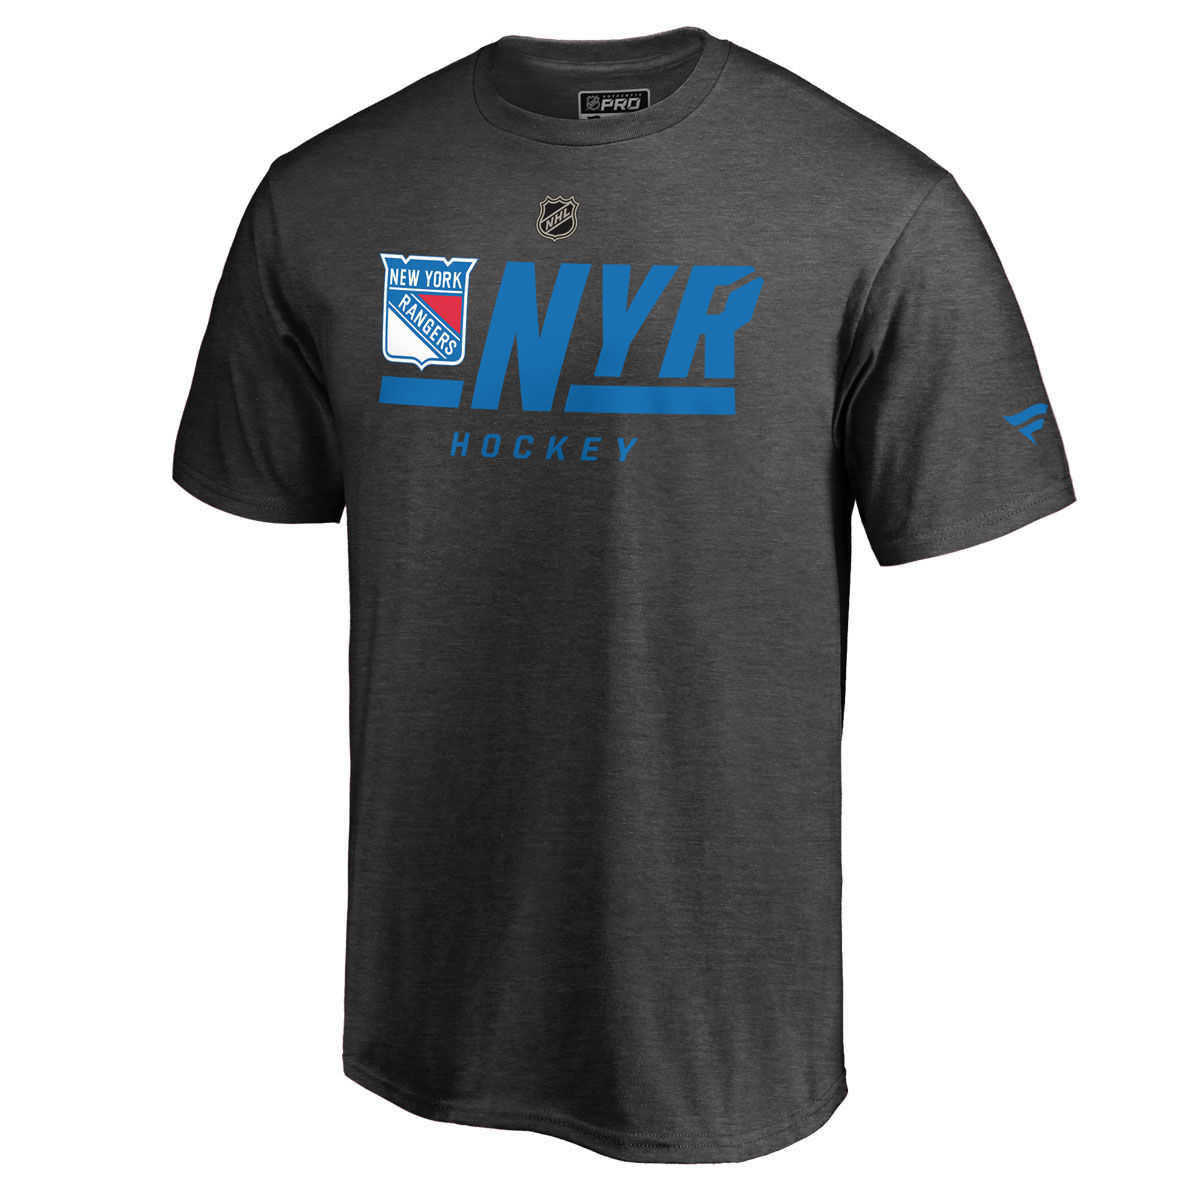 New York Rangers Mens Authentic Pro Tricode T-Shirt